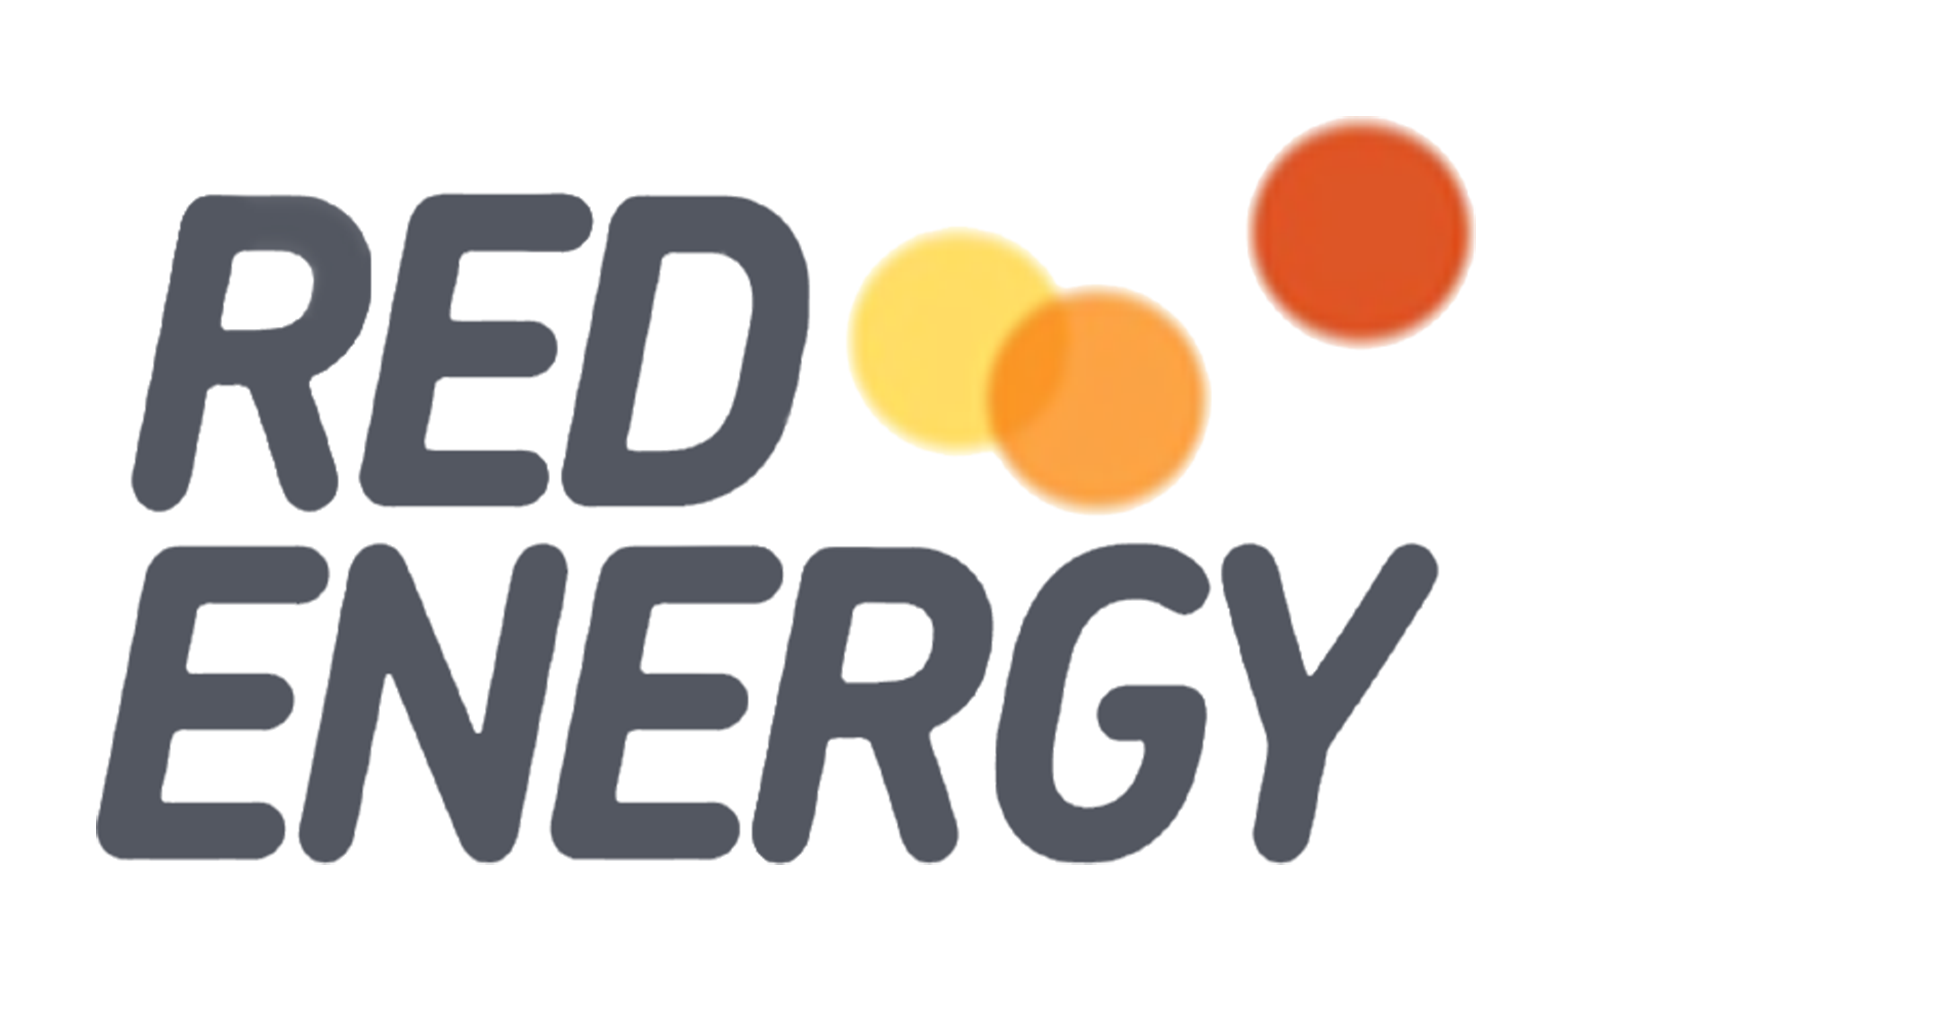 Gas clipart tong. Red energy oil refinery